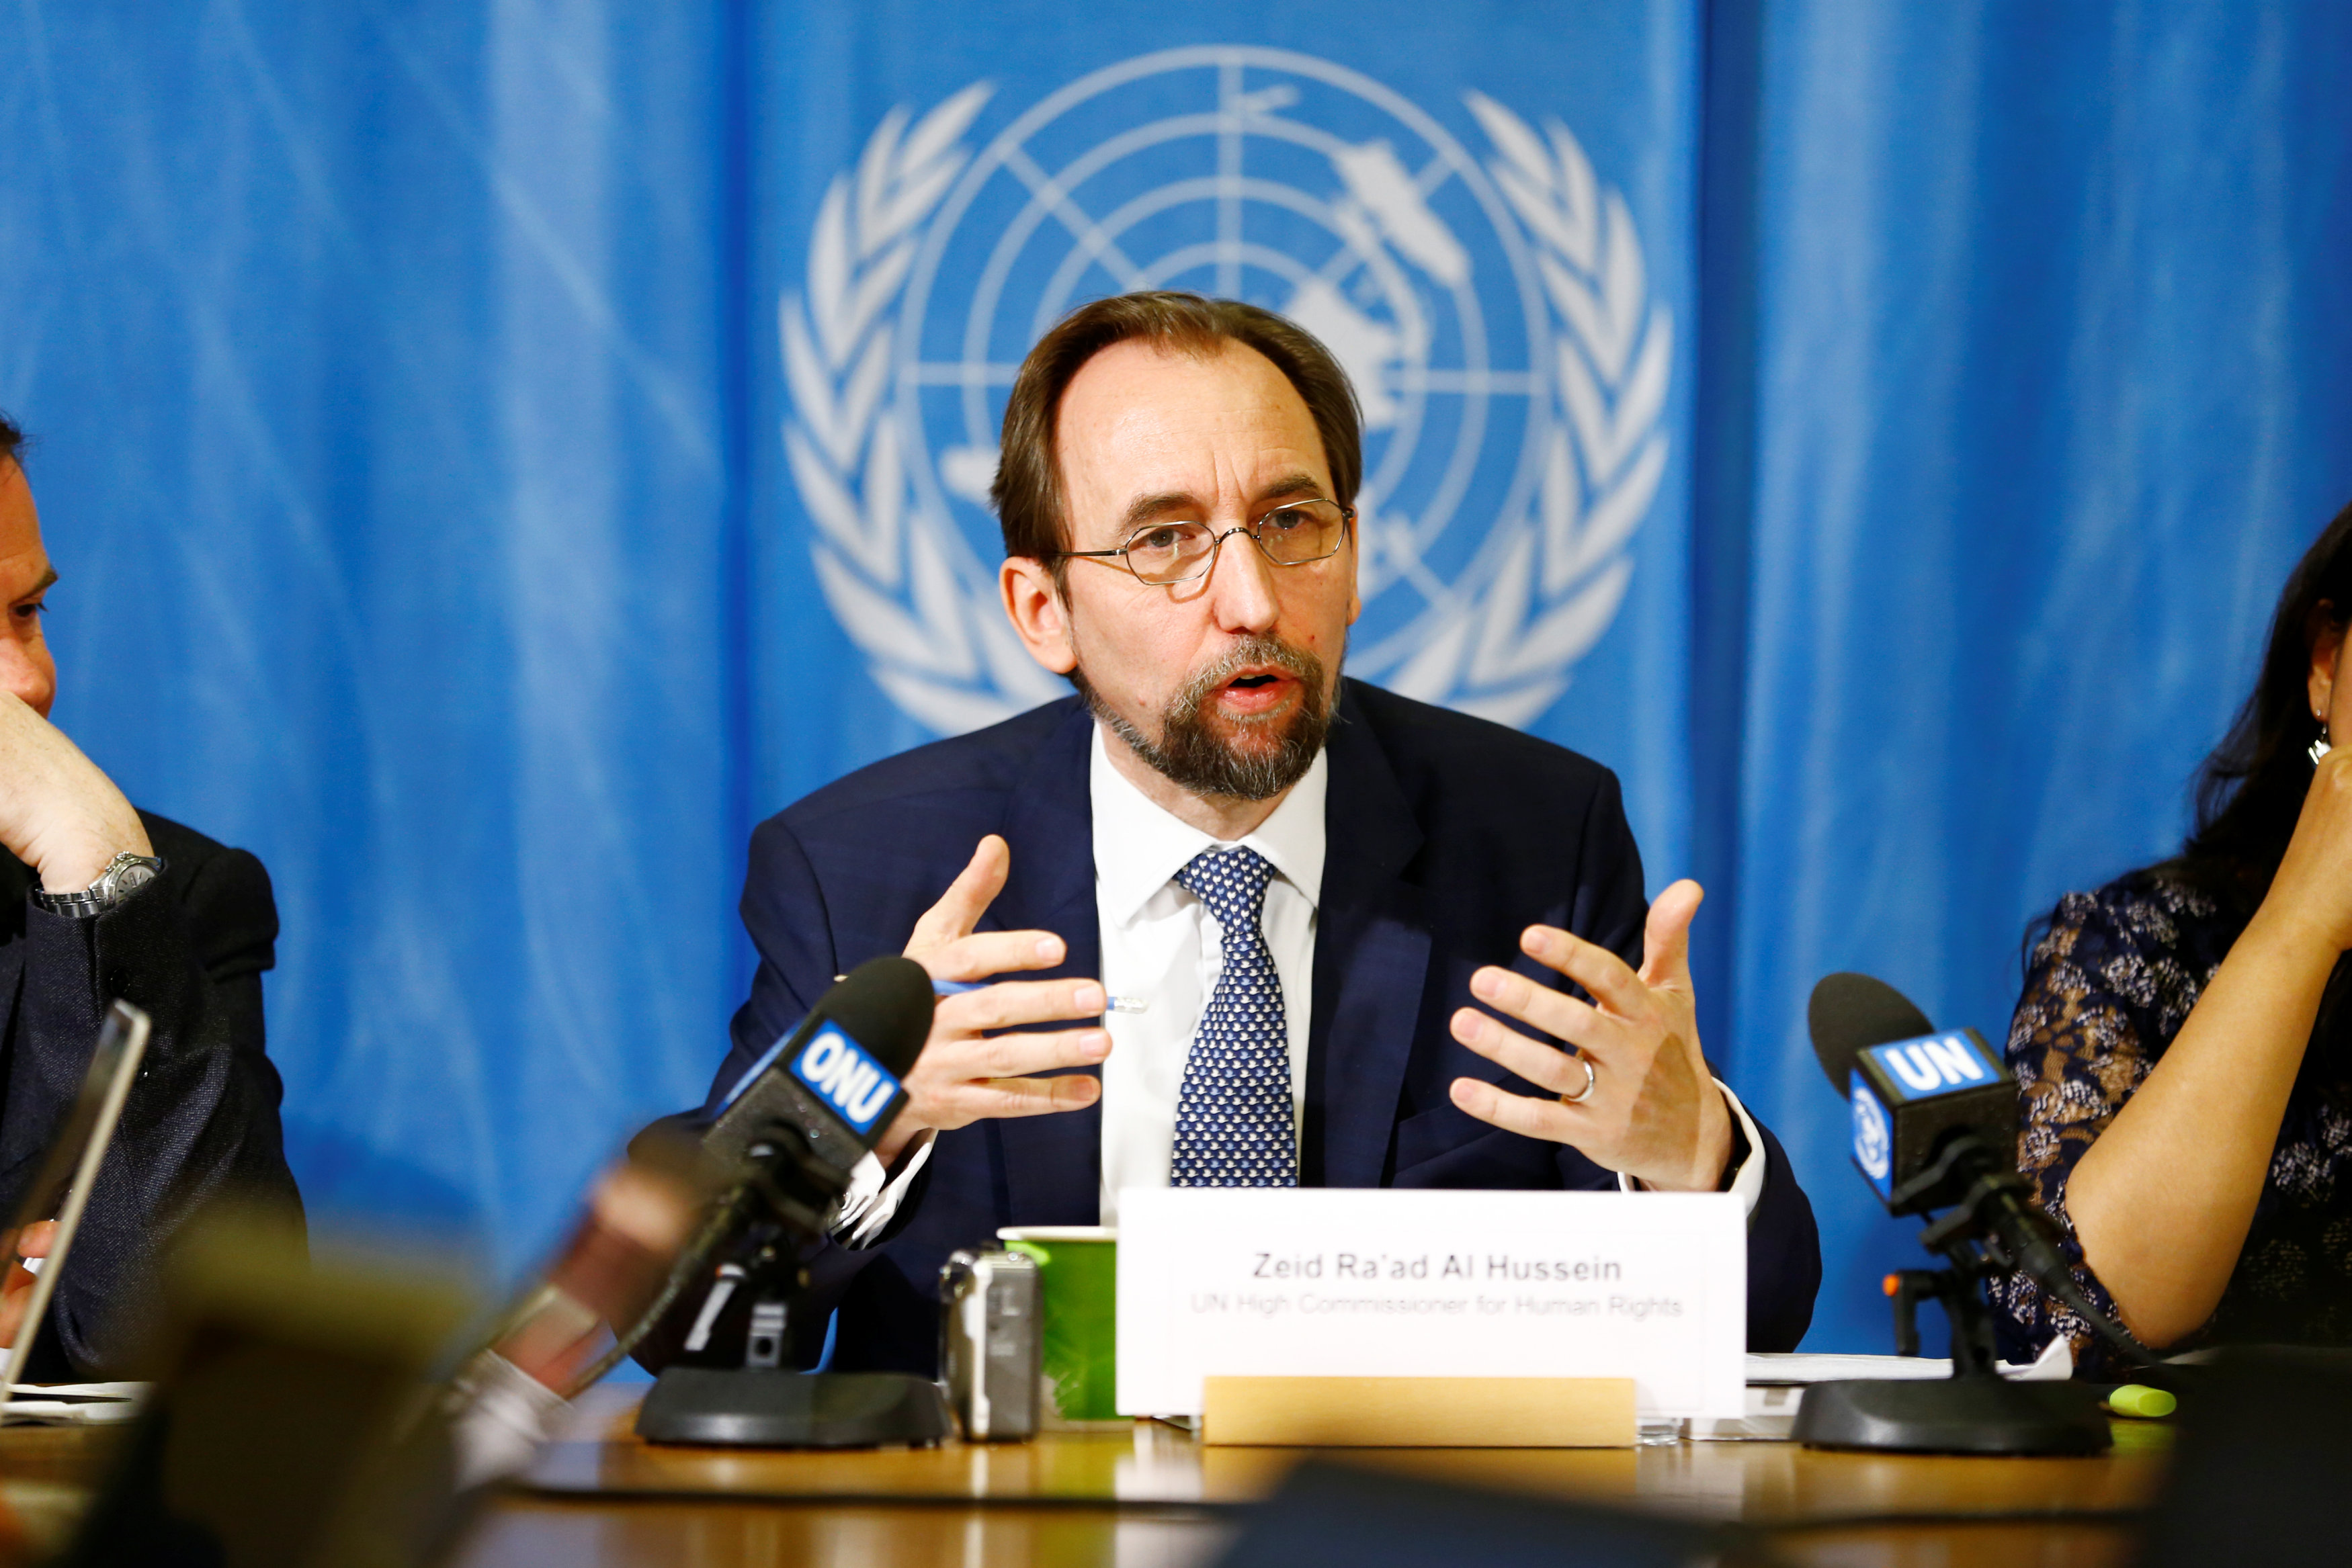 United Nations High Commissioner for Human Rights Zeid Ra'ad al-Hussein of Jordan speaks during a news conference at the United Nations European headquarters in Geneva, Switzerland,